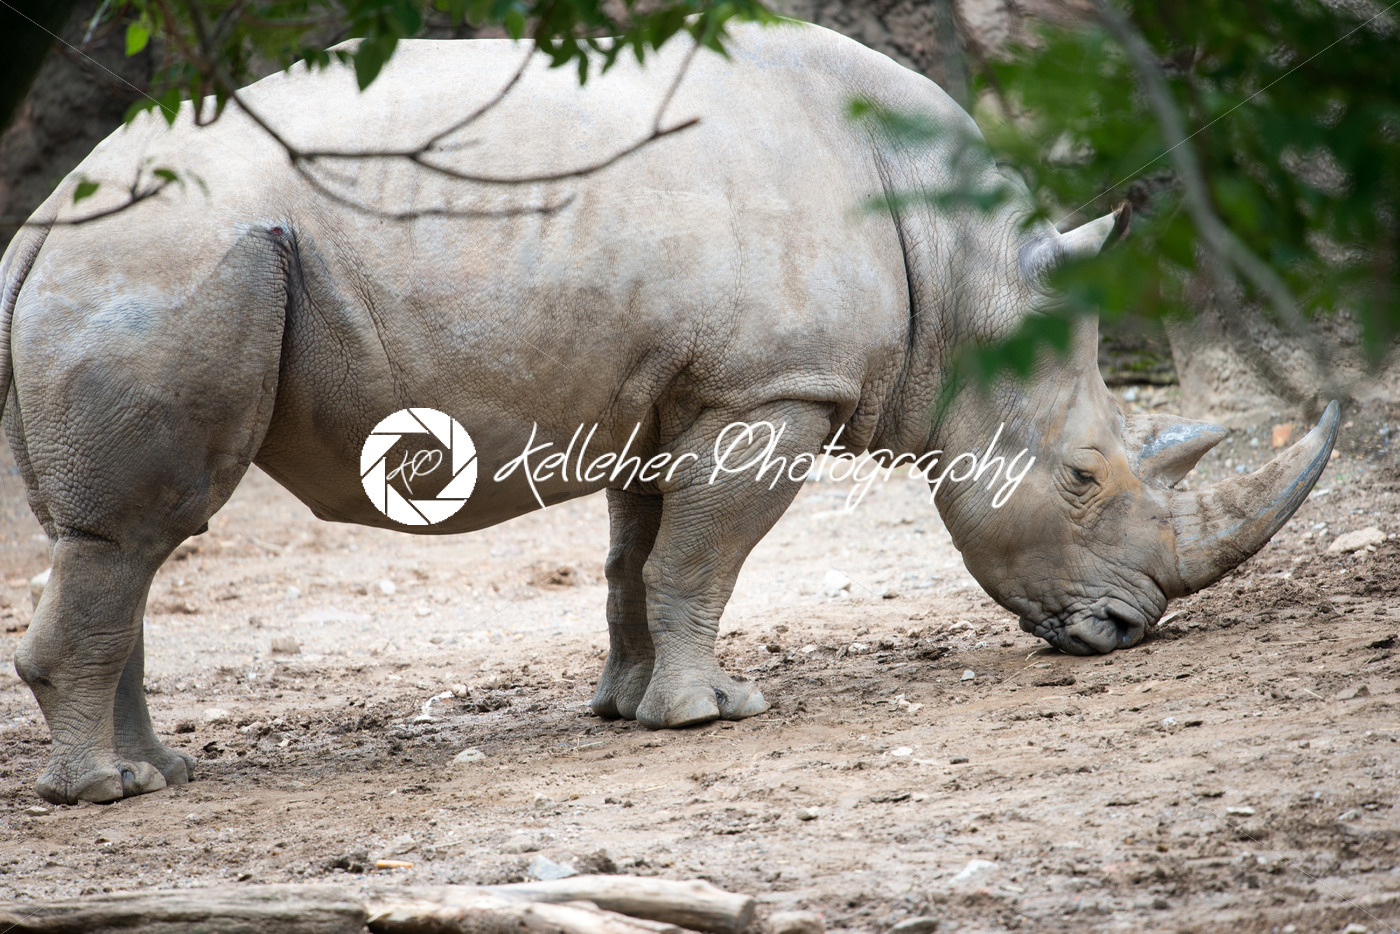 PHILADELPHIA, PA – MAY 30: Philadelphia Zoo, Amercia's First Zoo, wildlife refuge and zoological garden on May 30, 2017 - Kelleher Photography Store